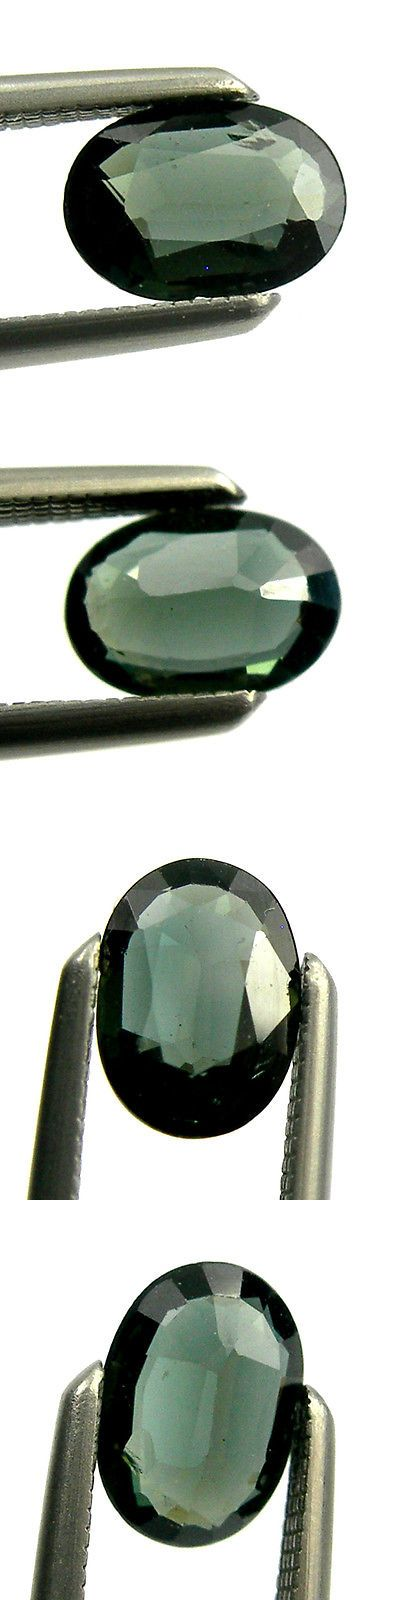 Other Sapphires 164408: 0.65 Carat 6X4mm Oval Green Natural Australian Parti Sapphire Loose, Ops03 -> BUY IT NOW ONLY: $84.5 on eBay!